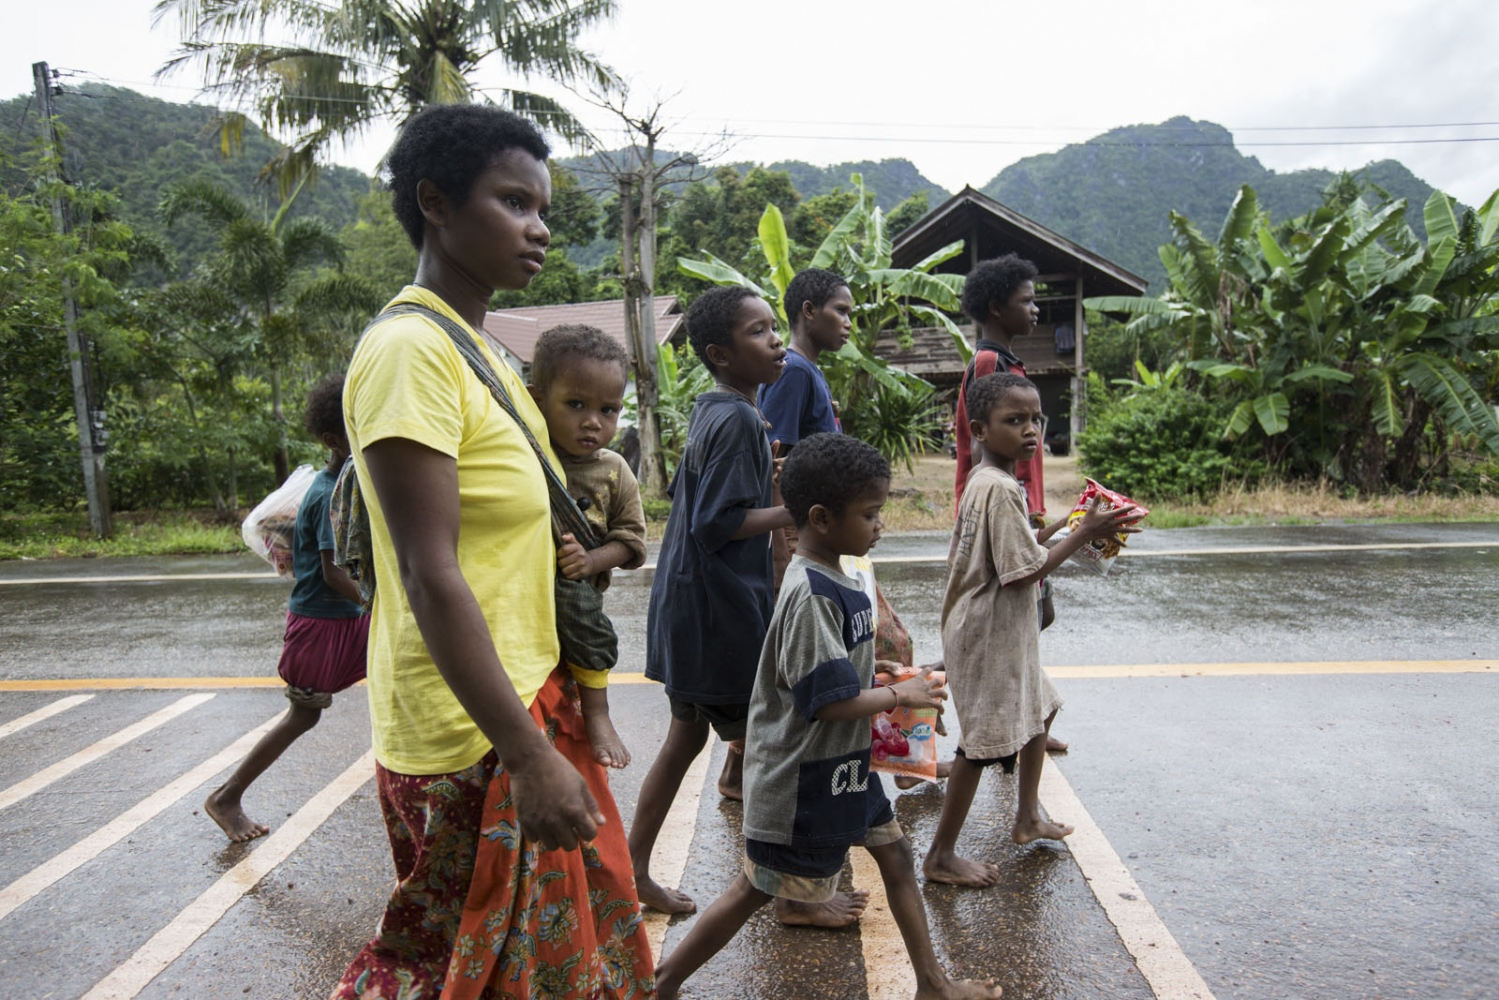 A group of Maniq youngsters walk bare-footed along a road to buy food from a shop in a nearby village. Satun - September 2016